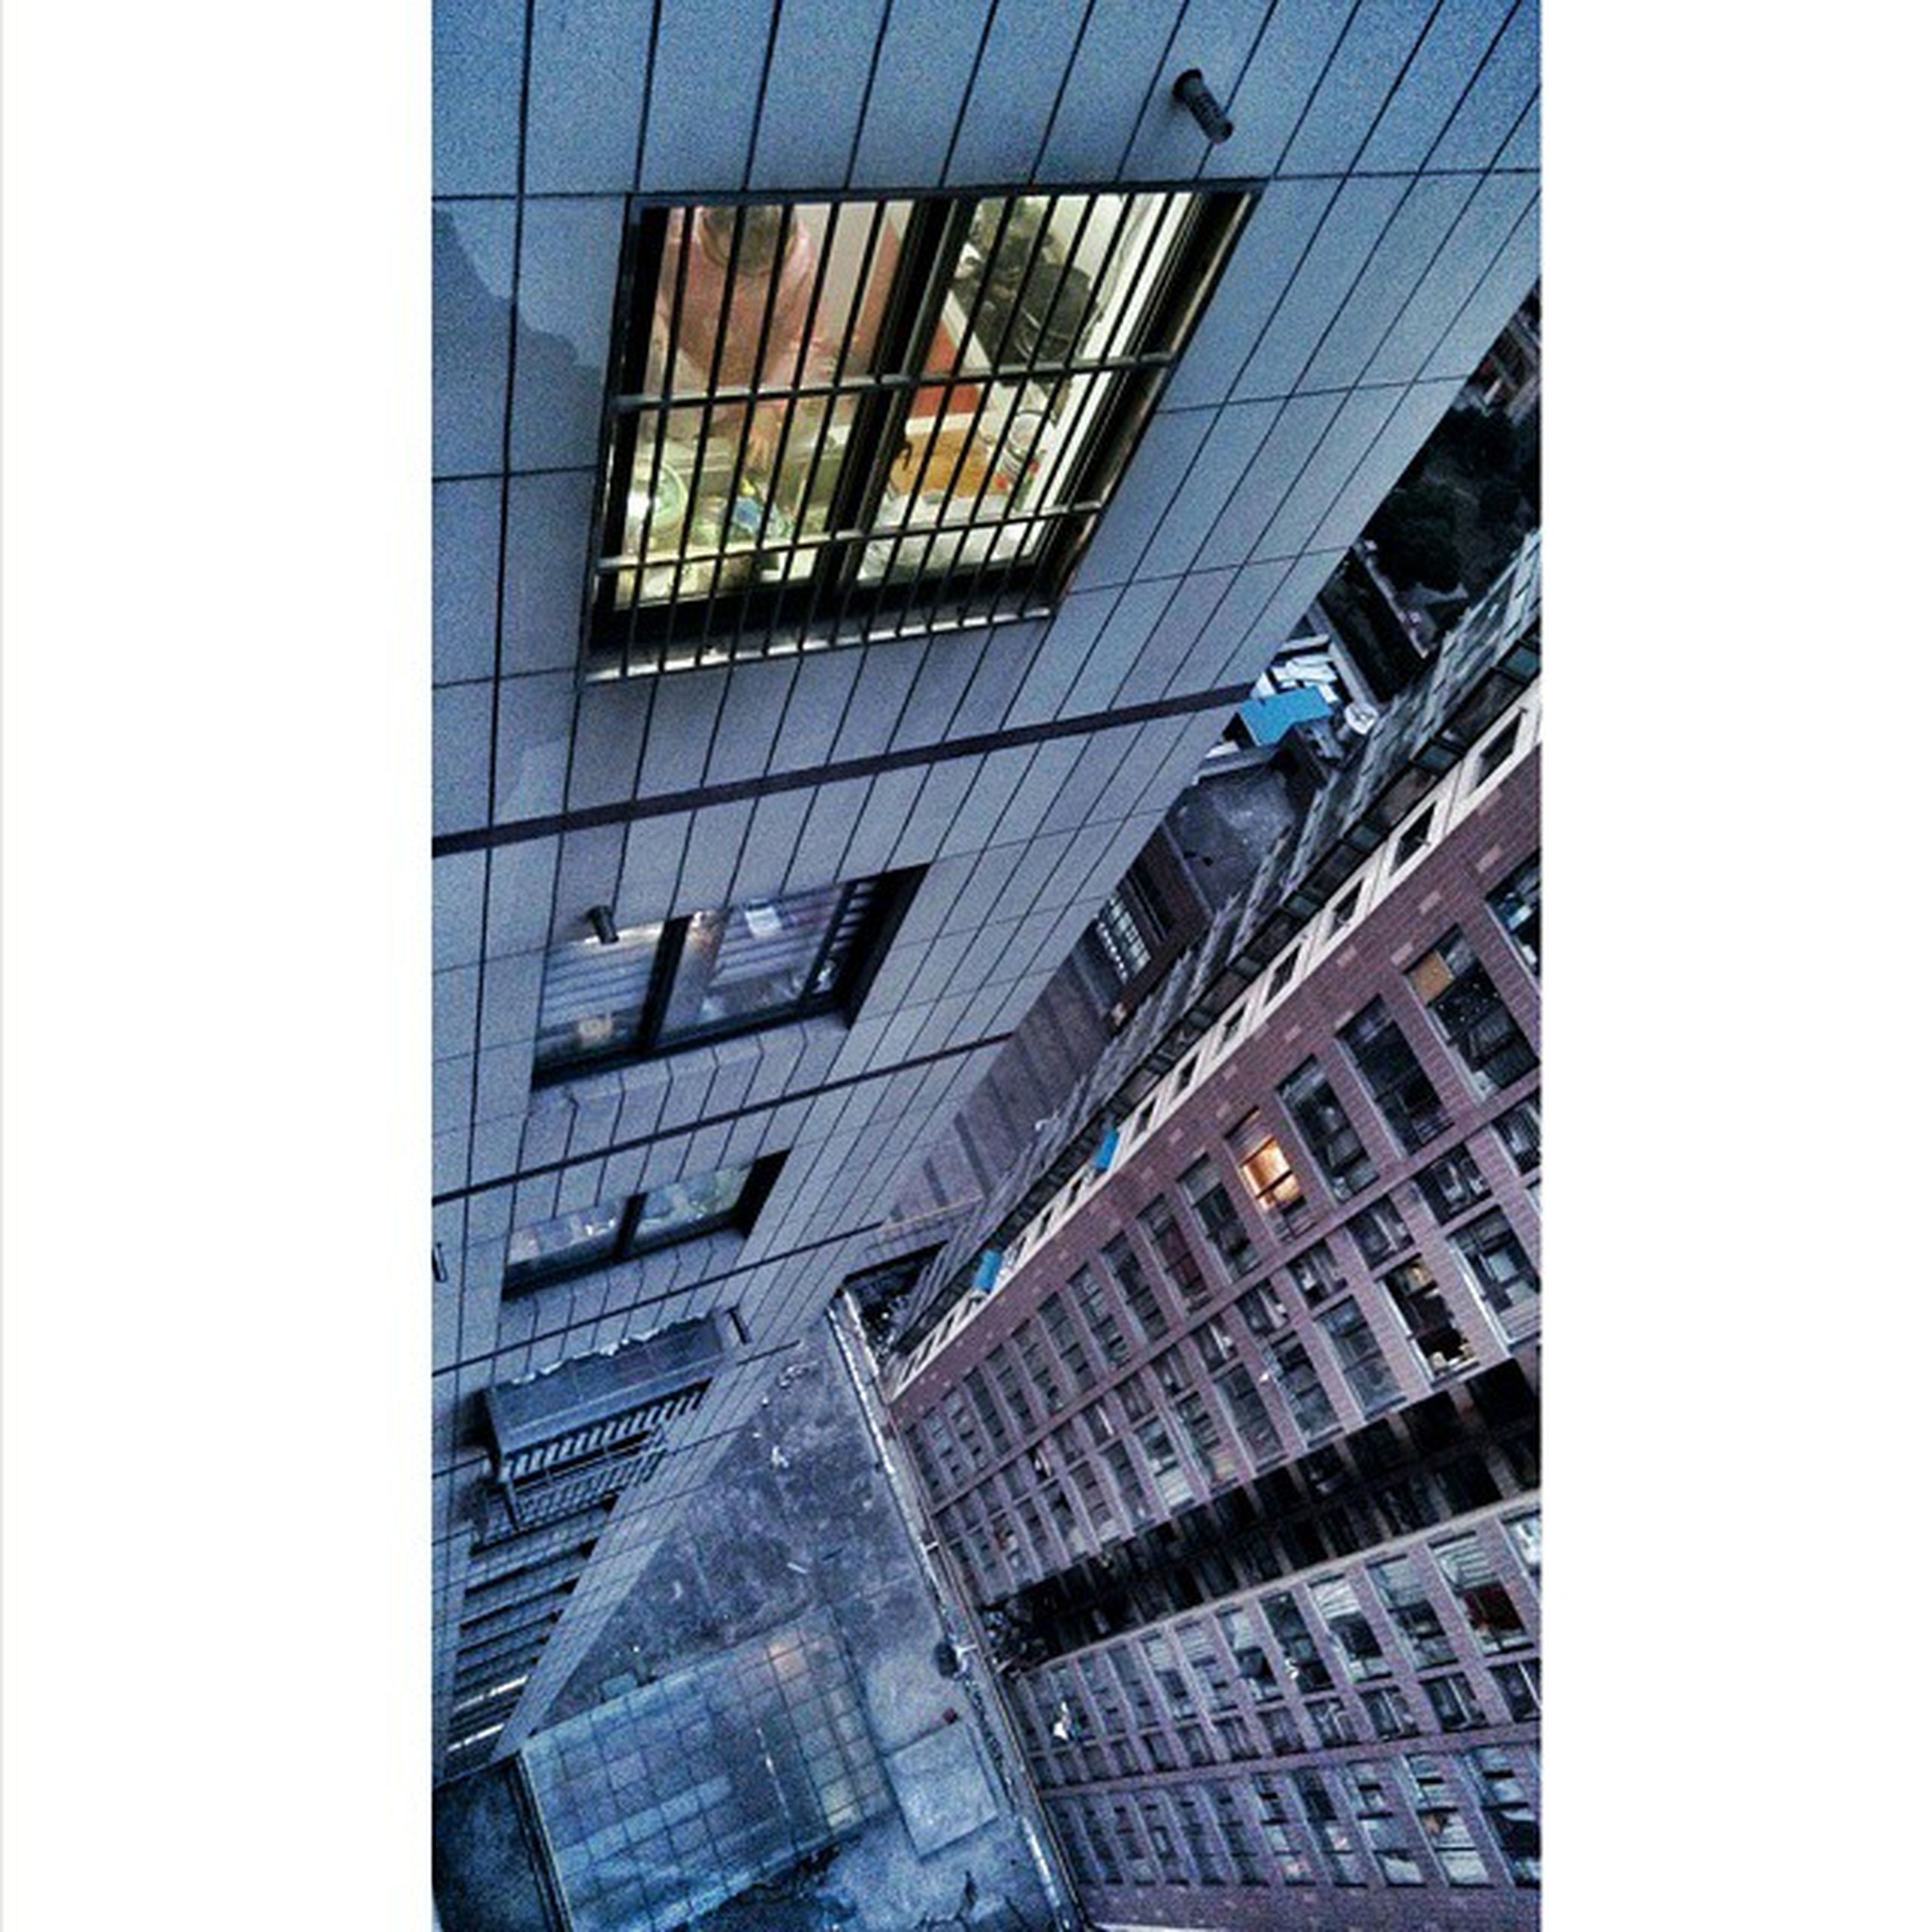 architecture, built structure, building exterior, low angle view, modern, city, building, office building, window, glass - material, reflection, transfer print, clear sky, auto post production filter, skyscraper, city life, tall - high, tower, residential building, day